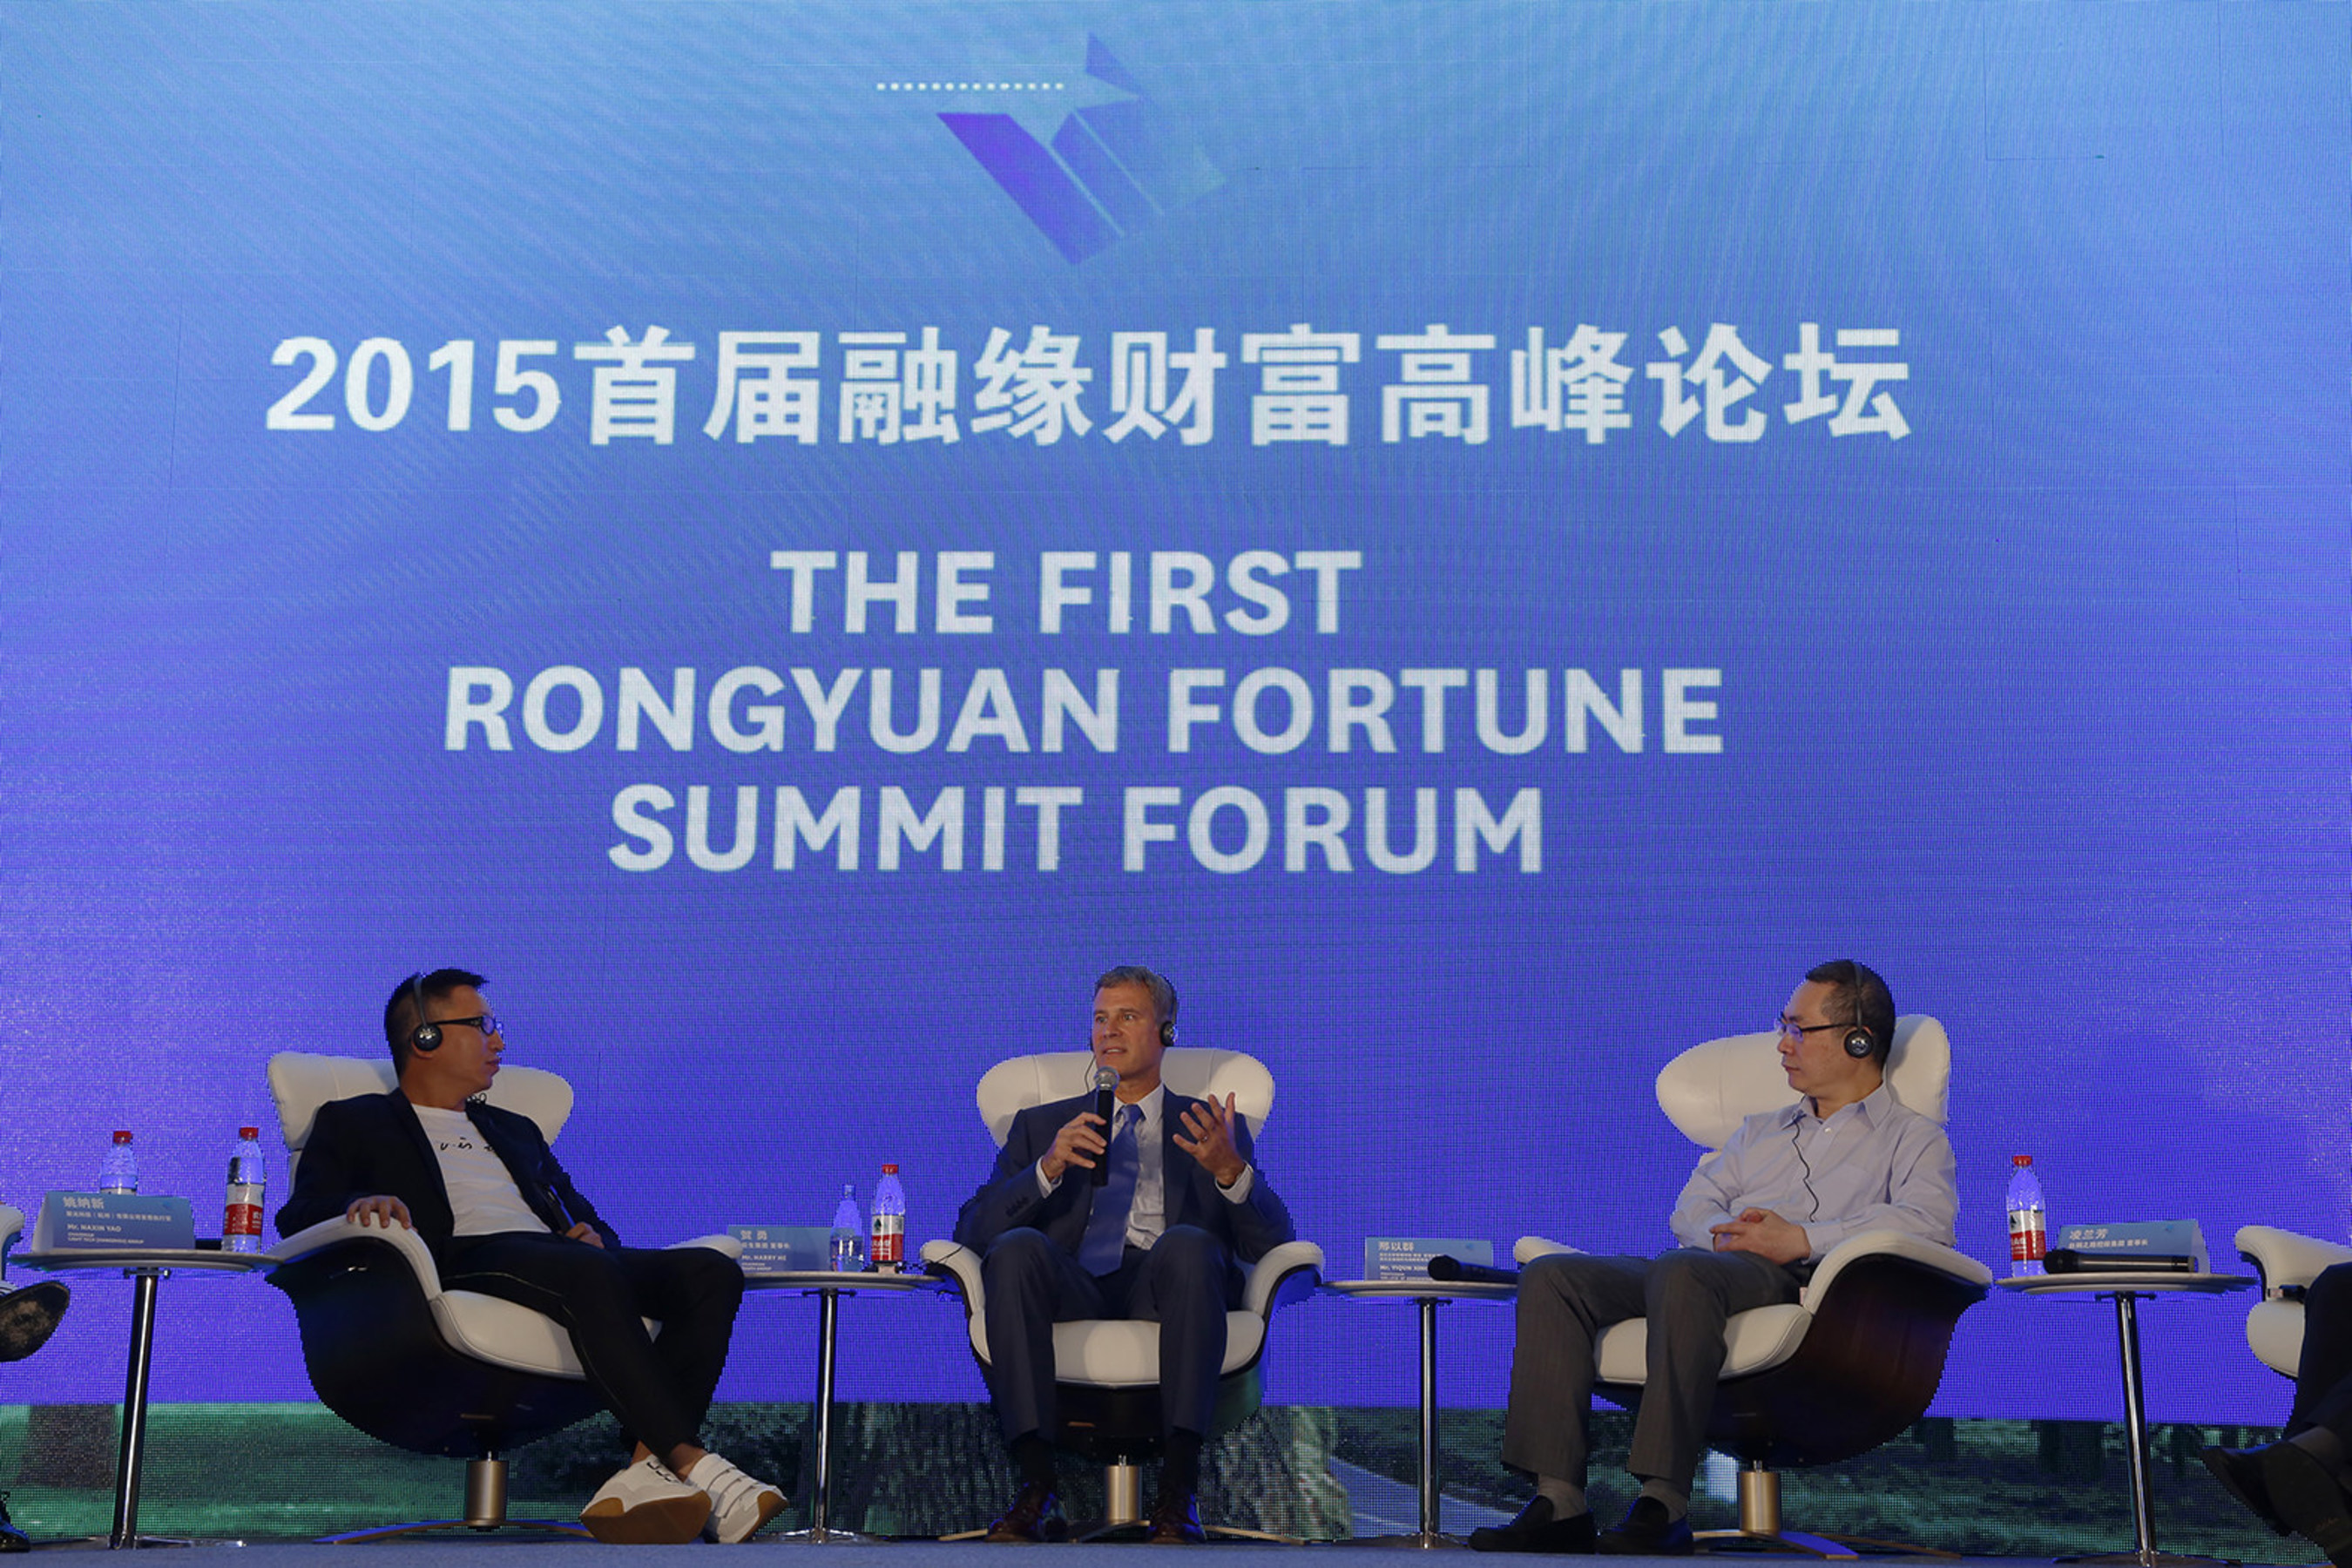 The first Rongyuan Fortune Summit Forum 2015